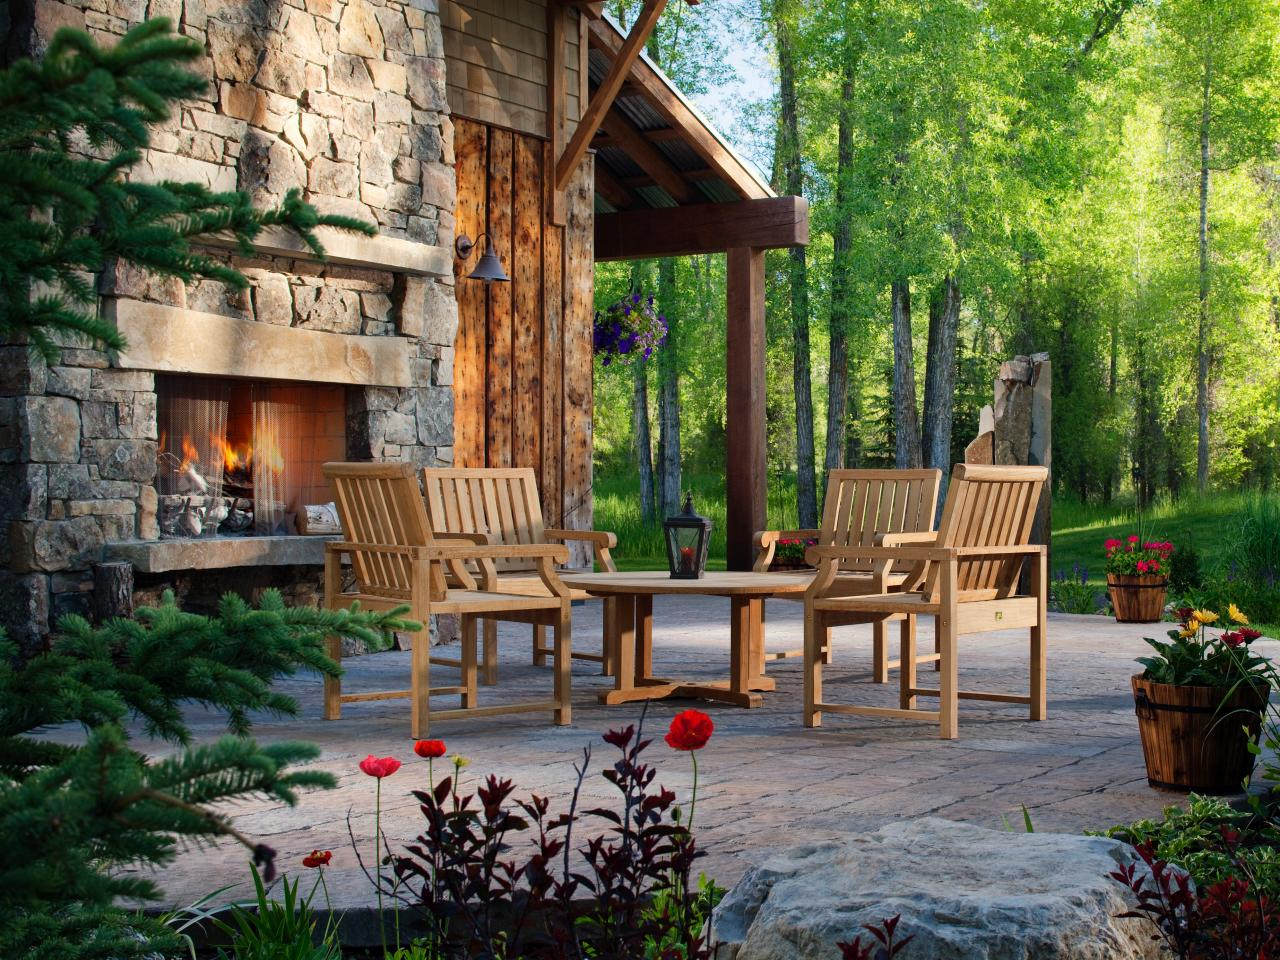 Outdoor Living Spaces: Ideas for Outdoor Rooms | HGTV